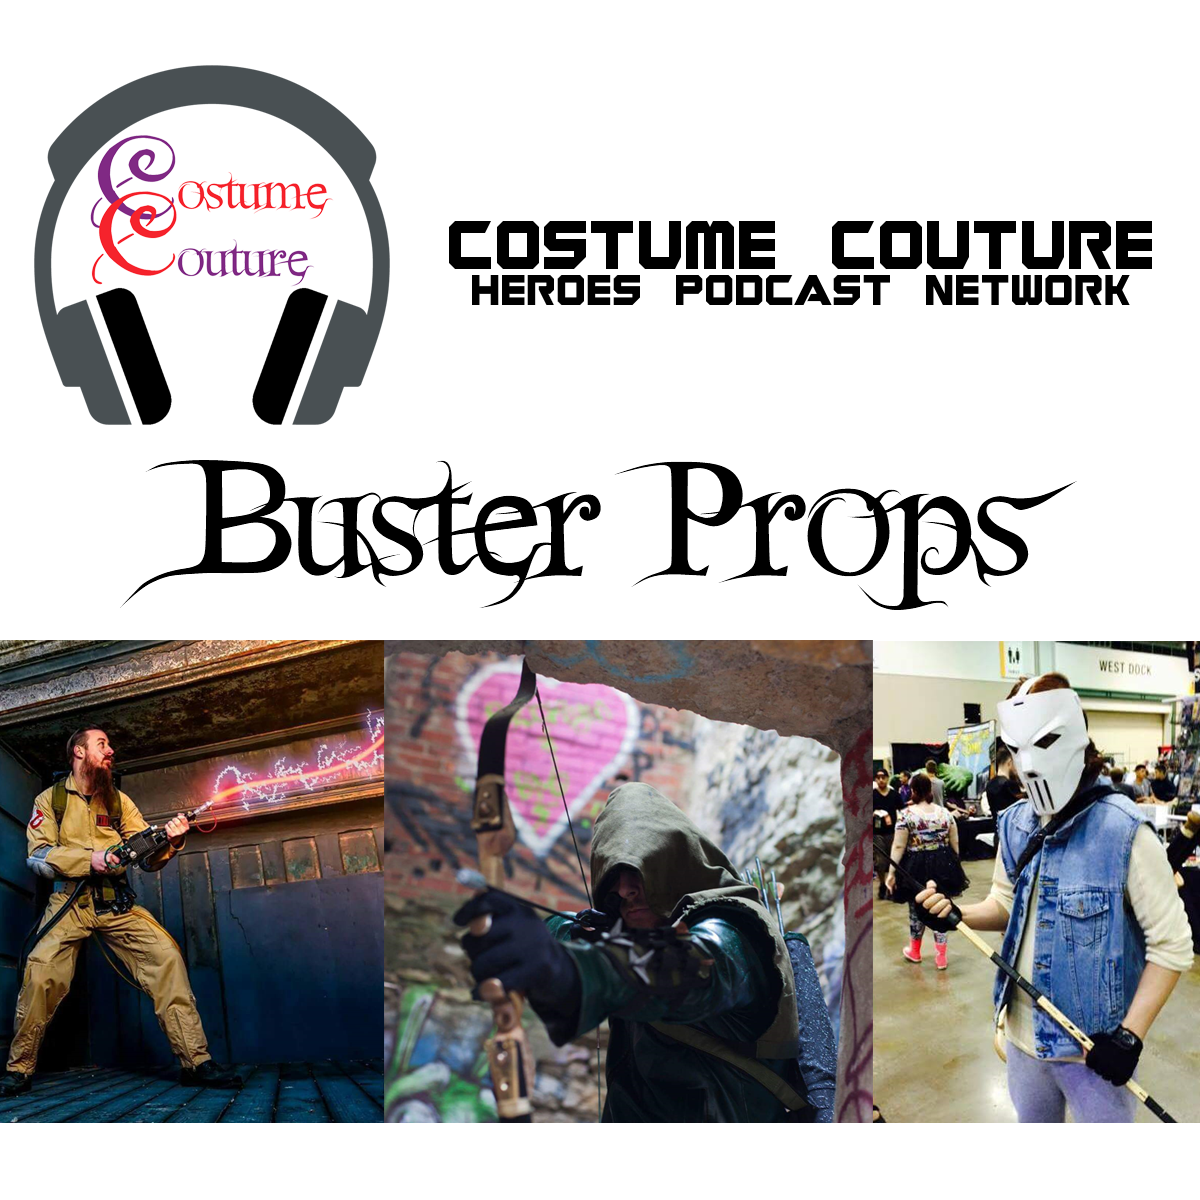 Costume Couture Buster Props